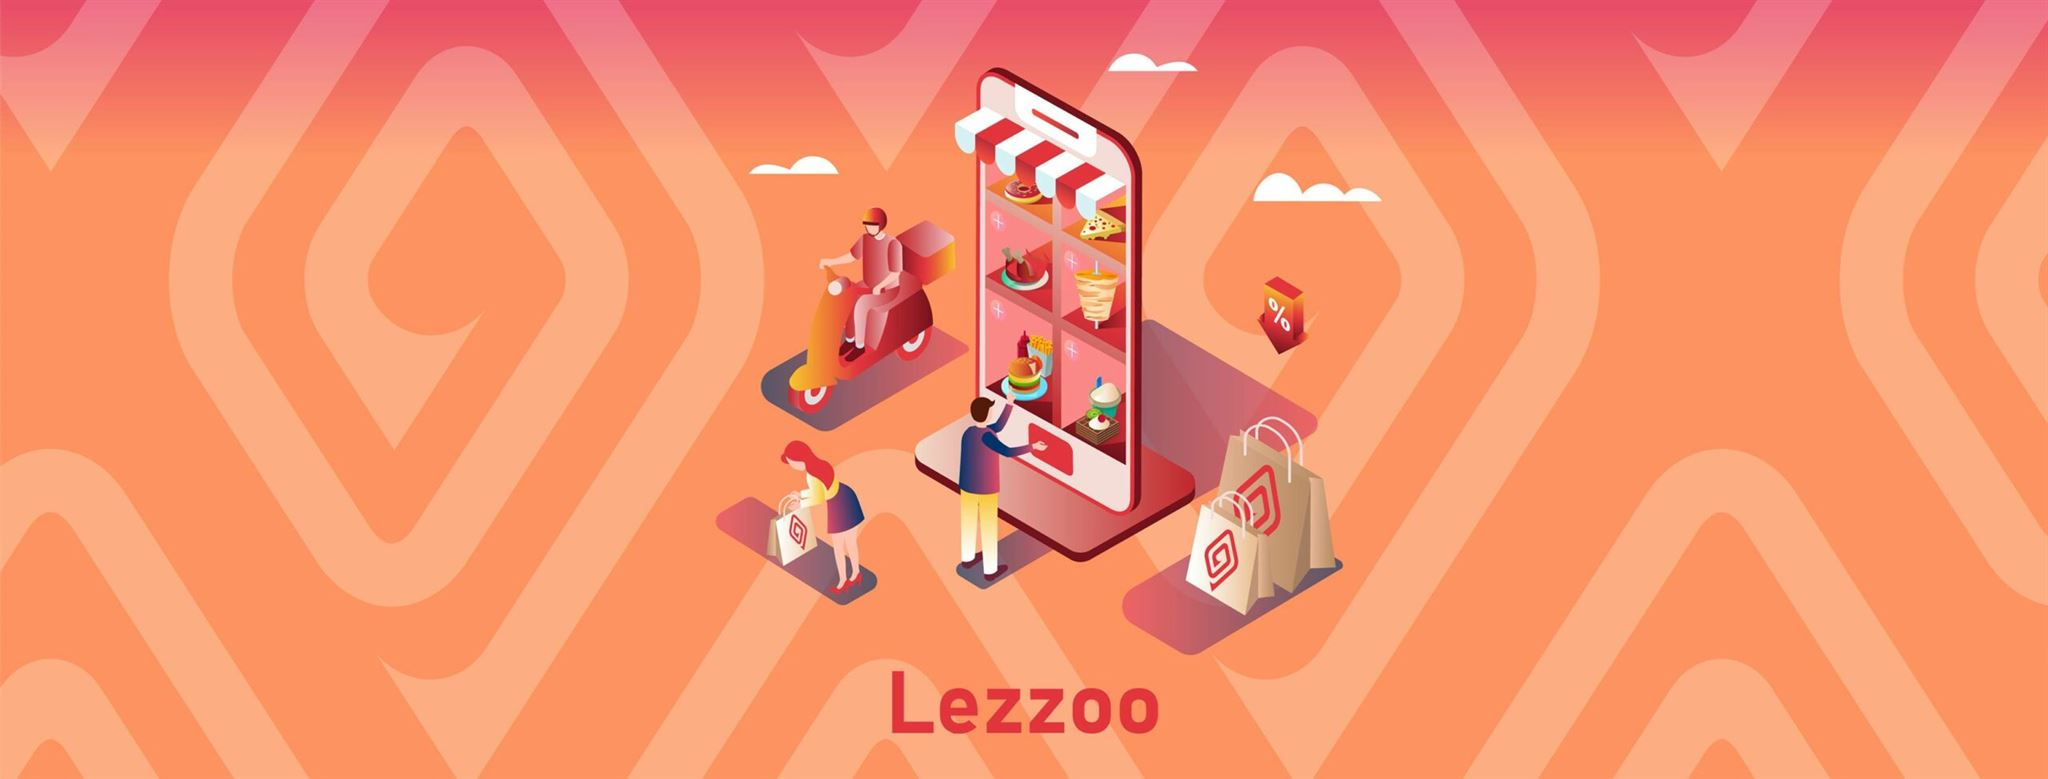 Lezzoo Closes Largest Seed Round In Iraq